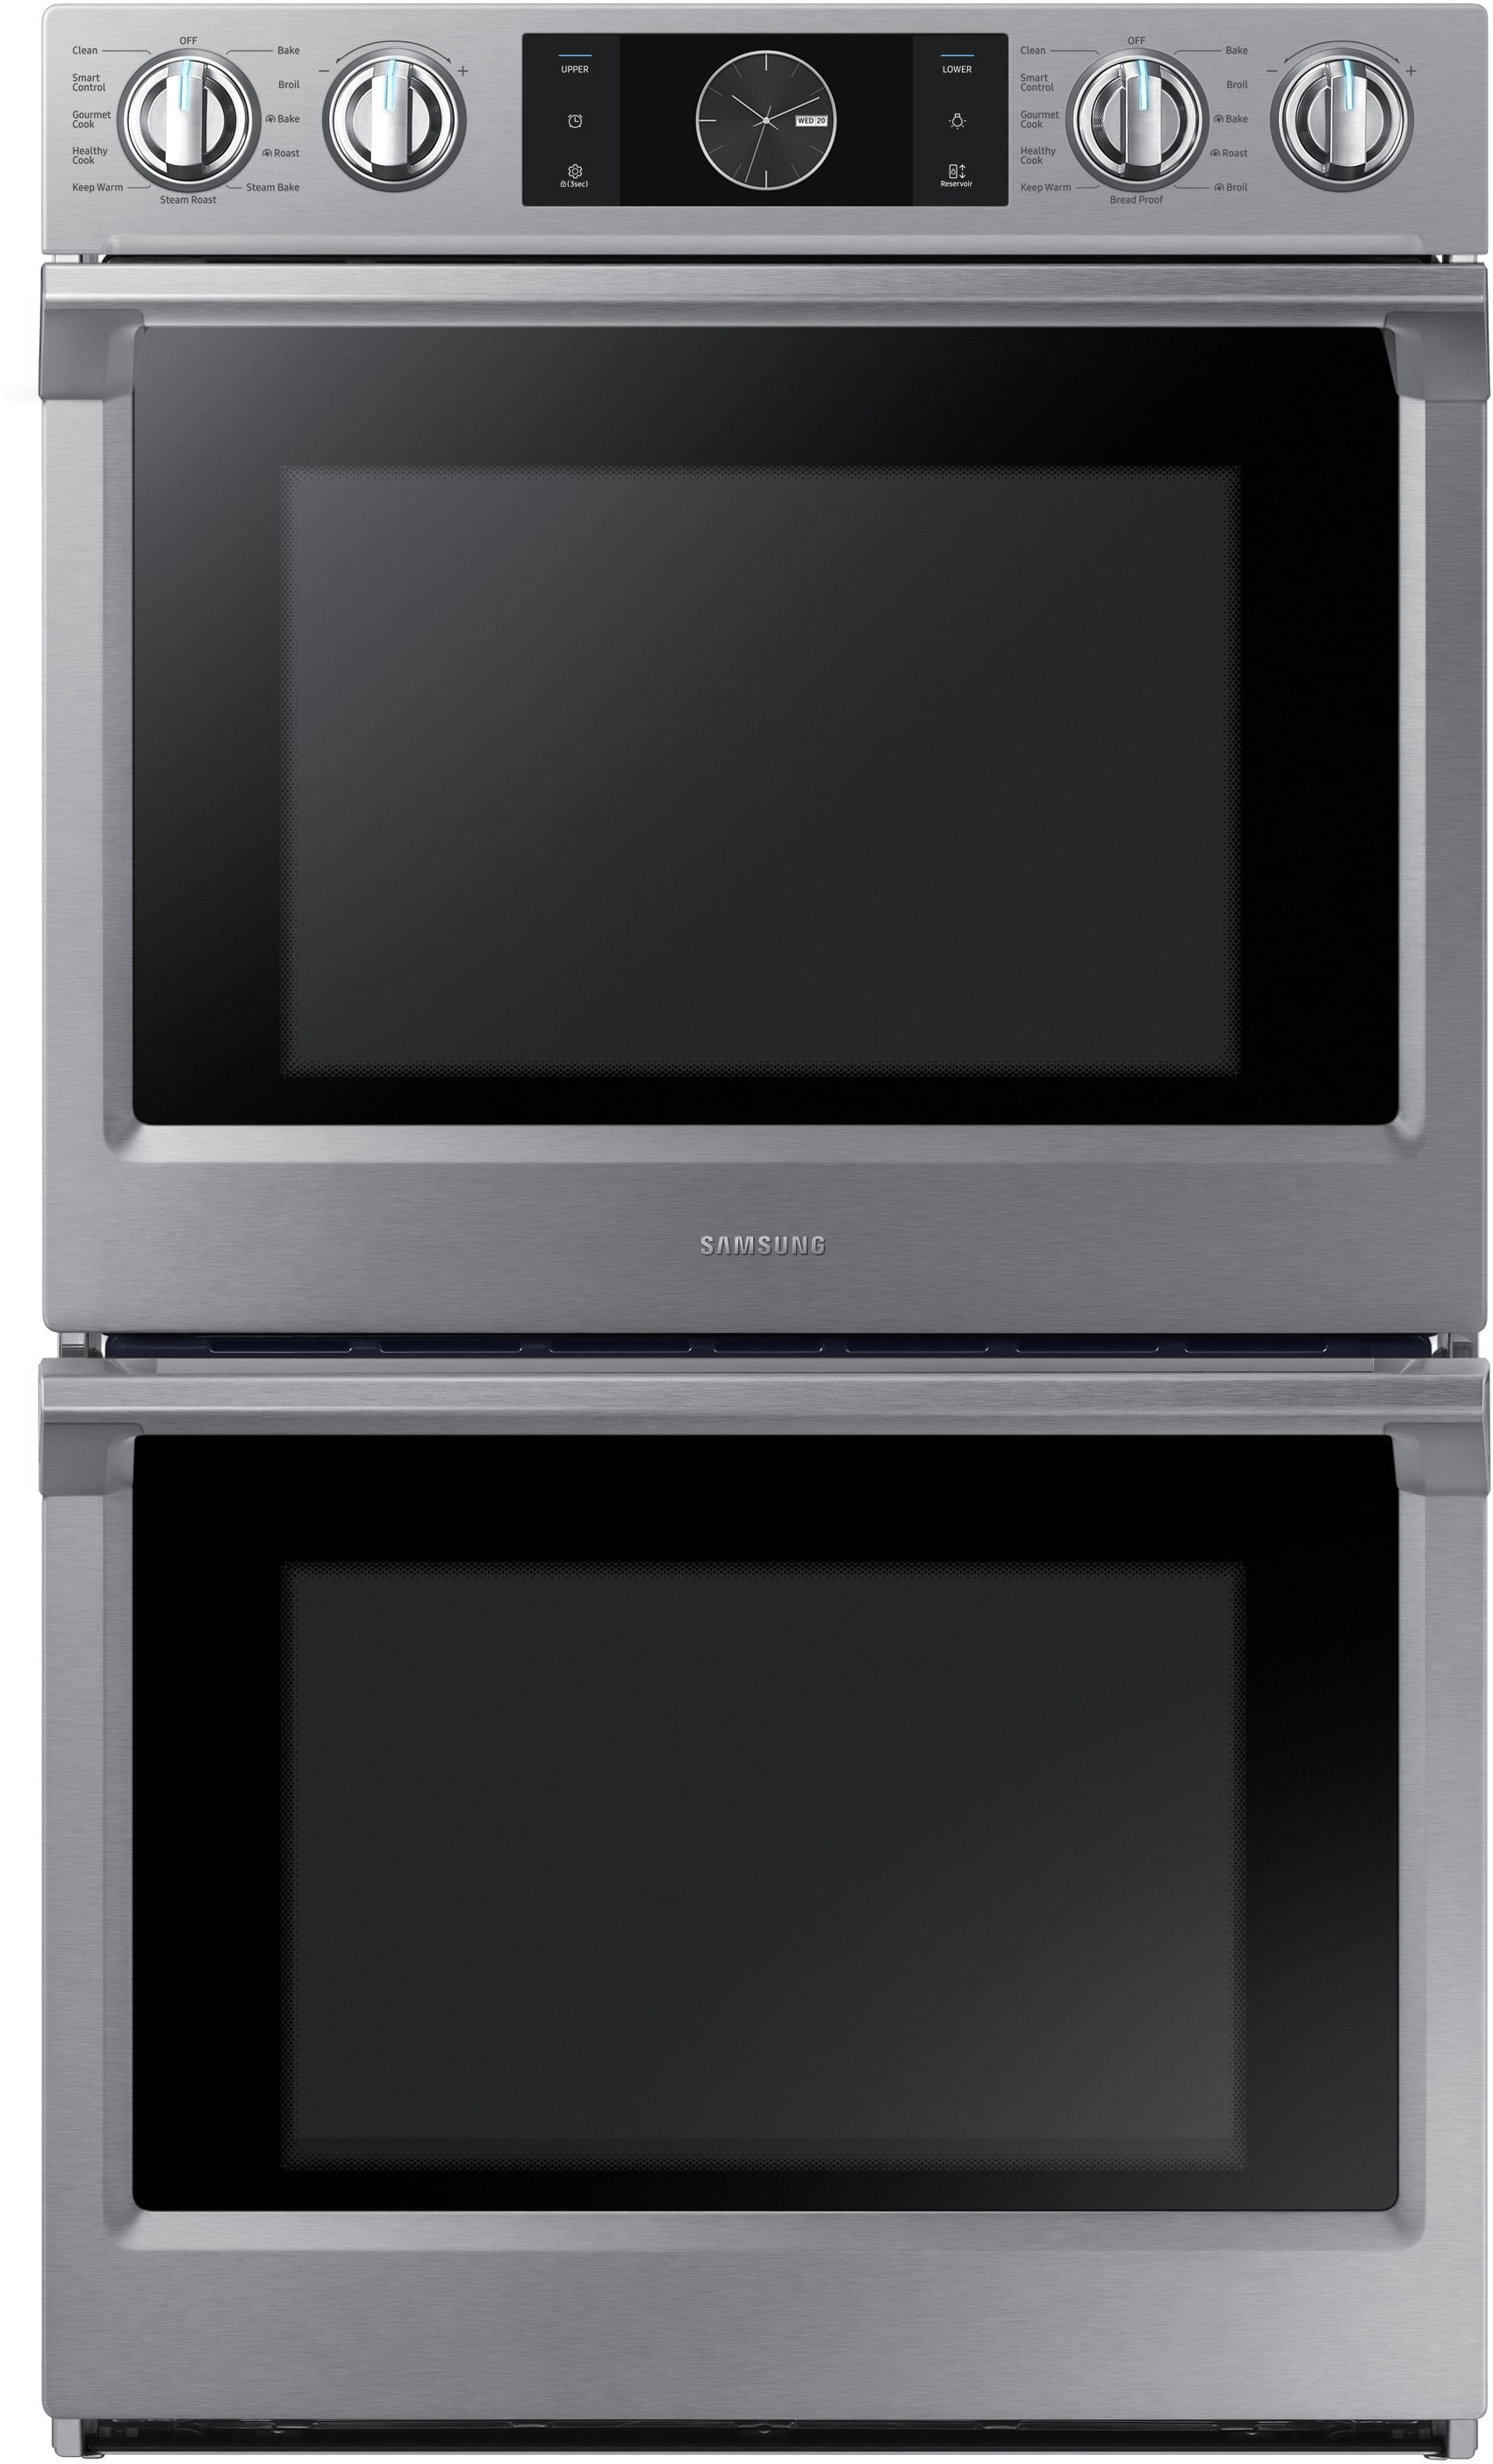 Samsung Nv51k7770ds 30 Inch Electric Double Wall Oven With